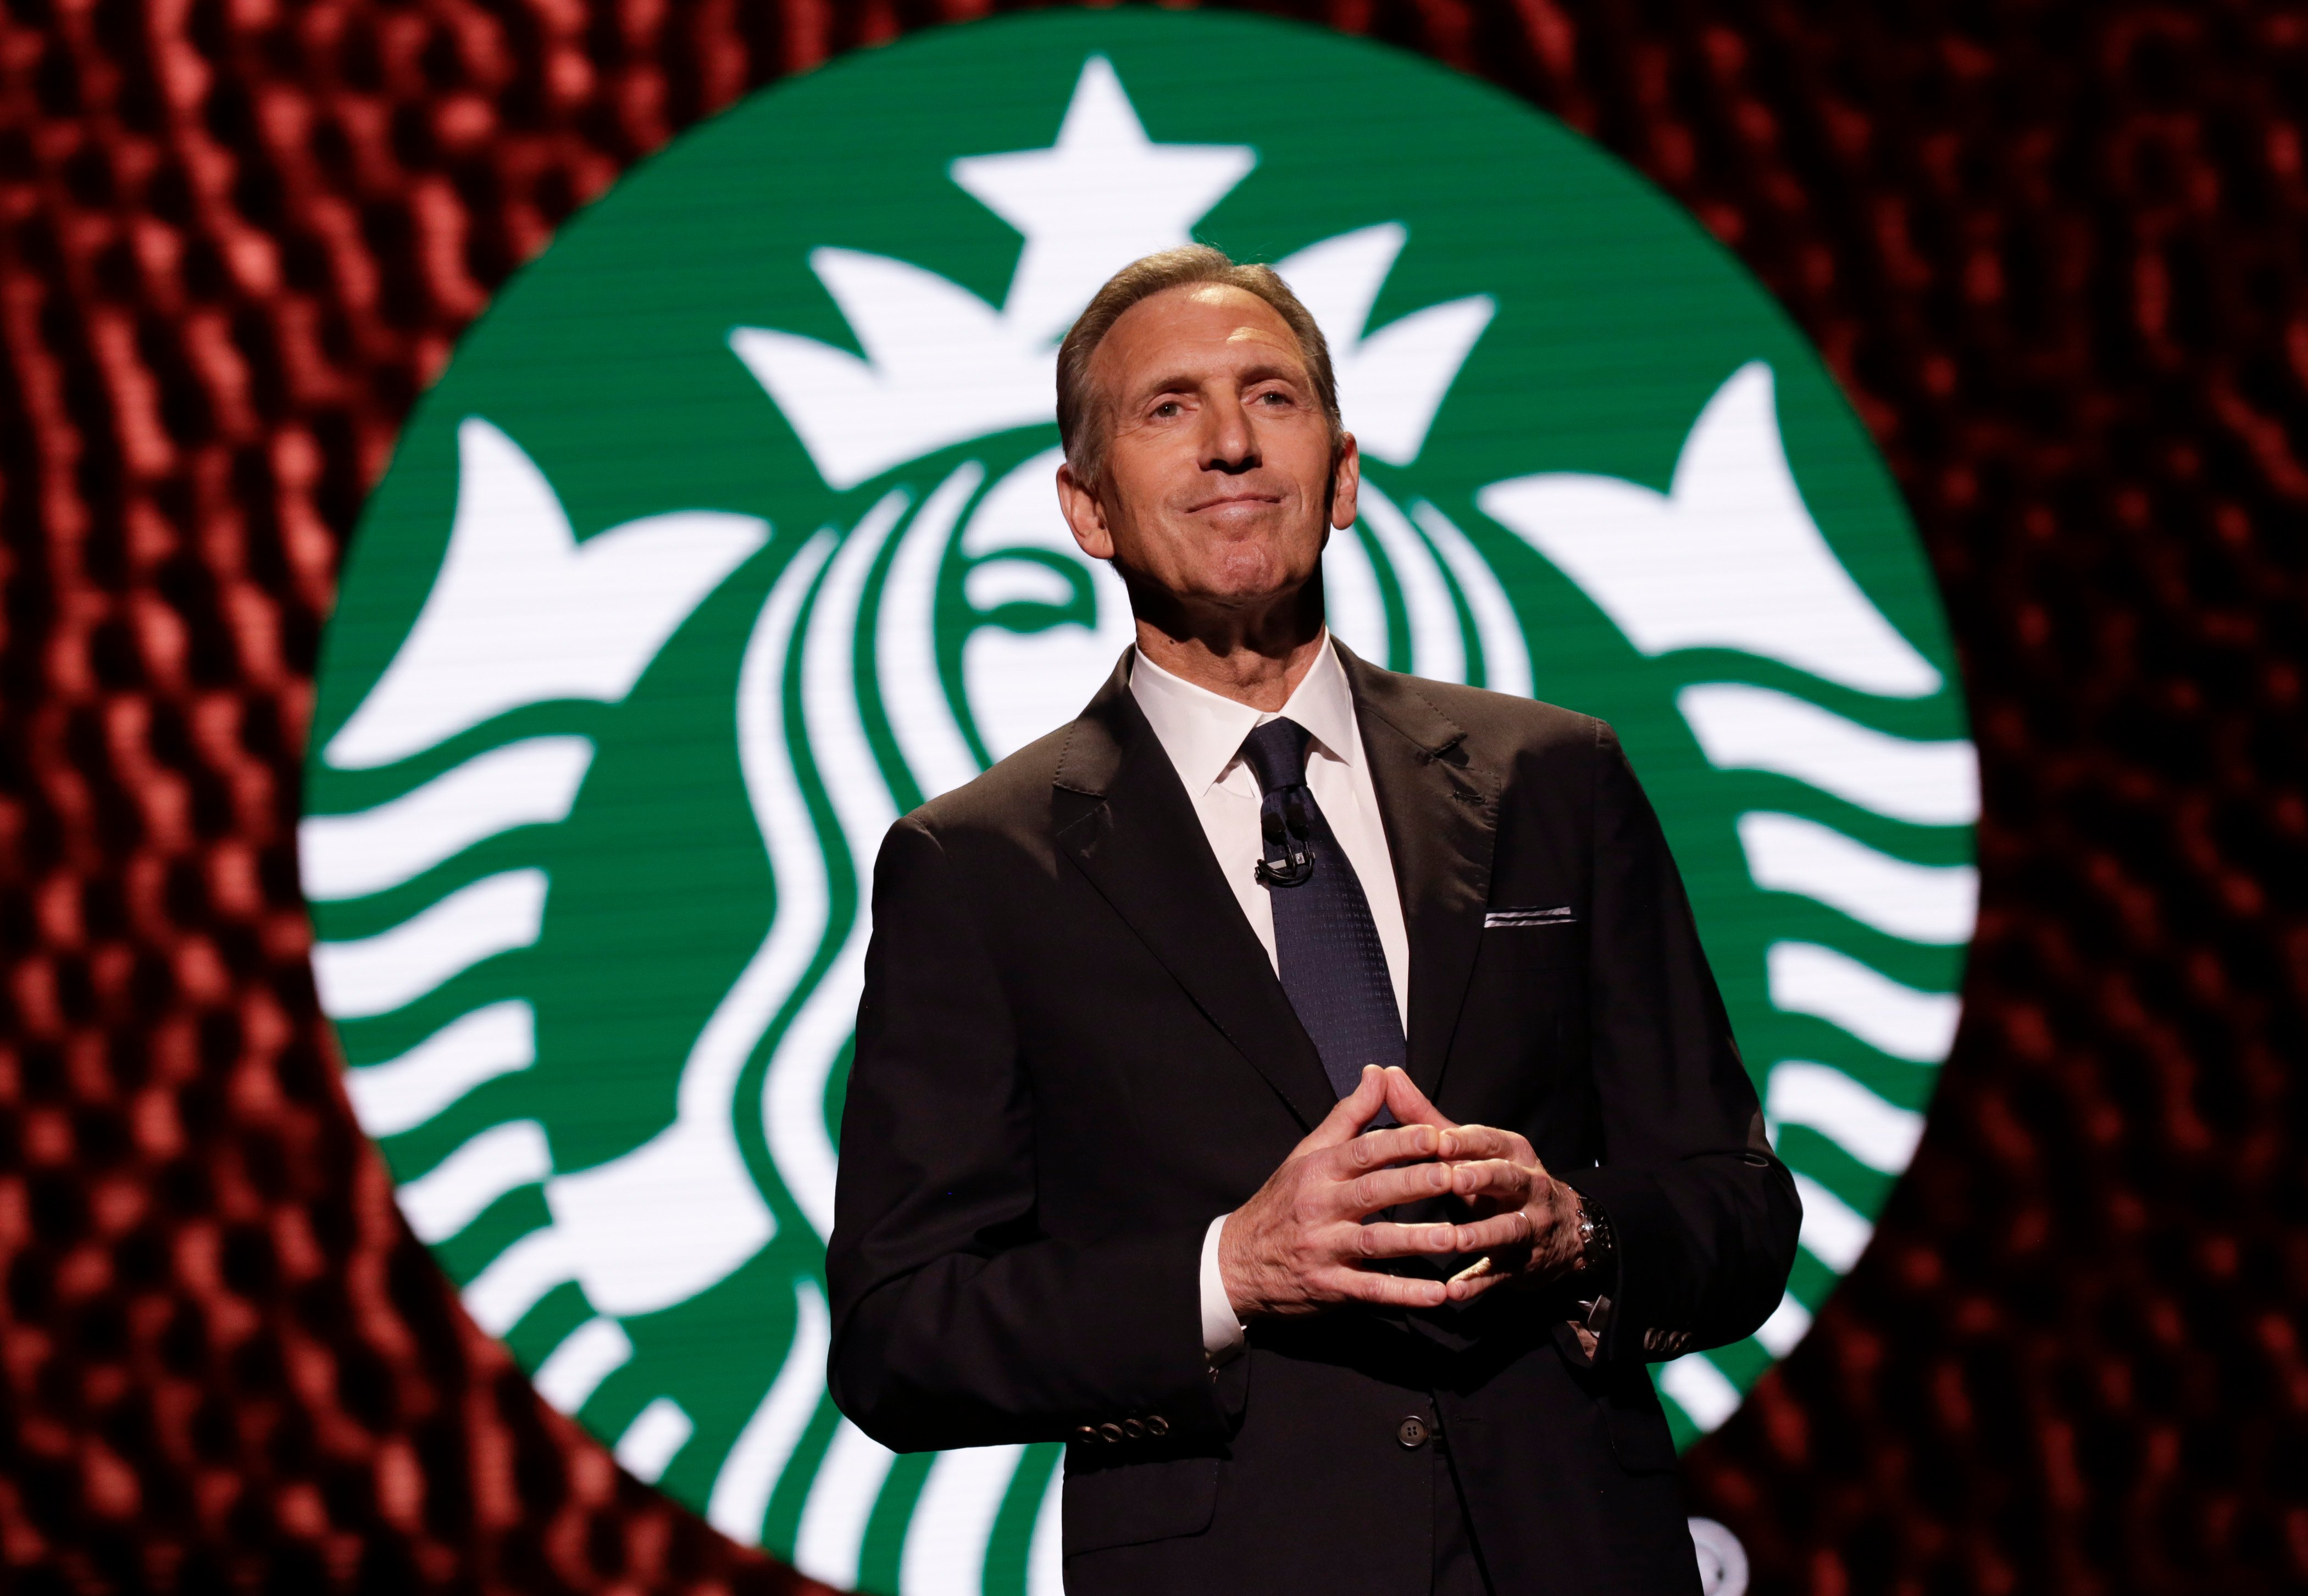 Starbucks Chairman and CEO Howard Schultz speaks at the Annual Meeting of Shareholders in Seattle, Washington on March 22, 2017. (JASON REDMOND/AFP/Getty Images)